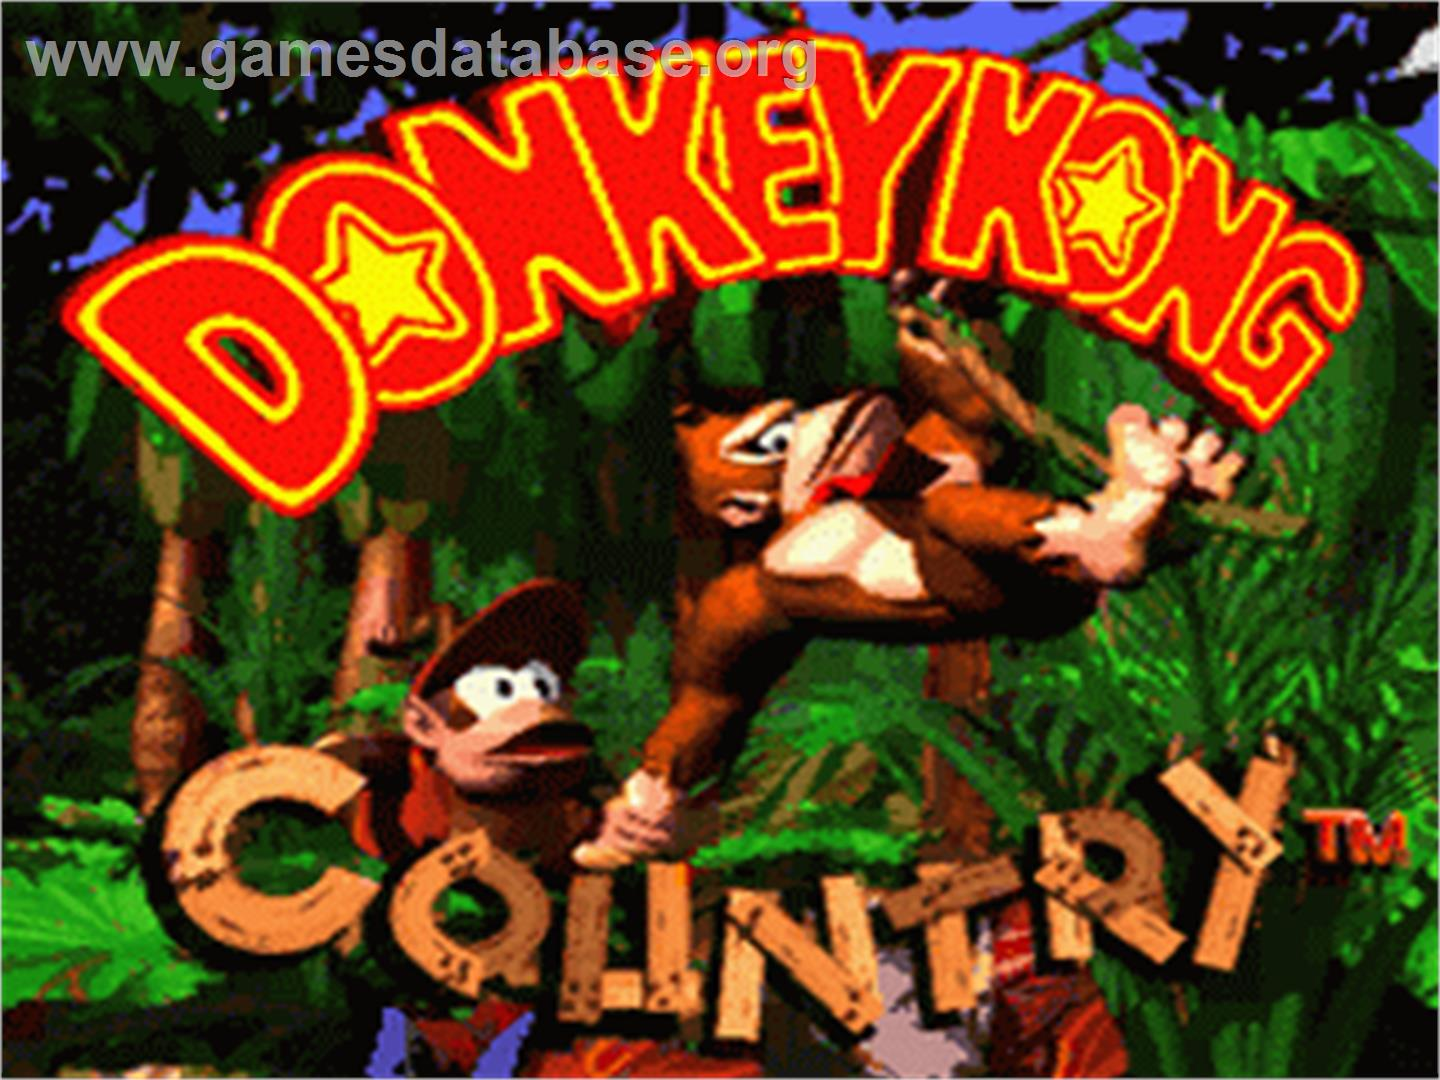 Download Donkey Kong Country Android Games APK - 4025506 ...